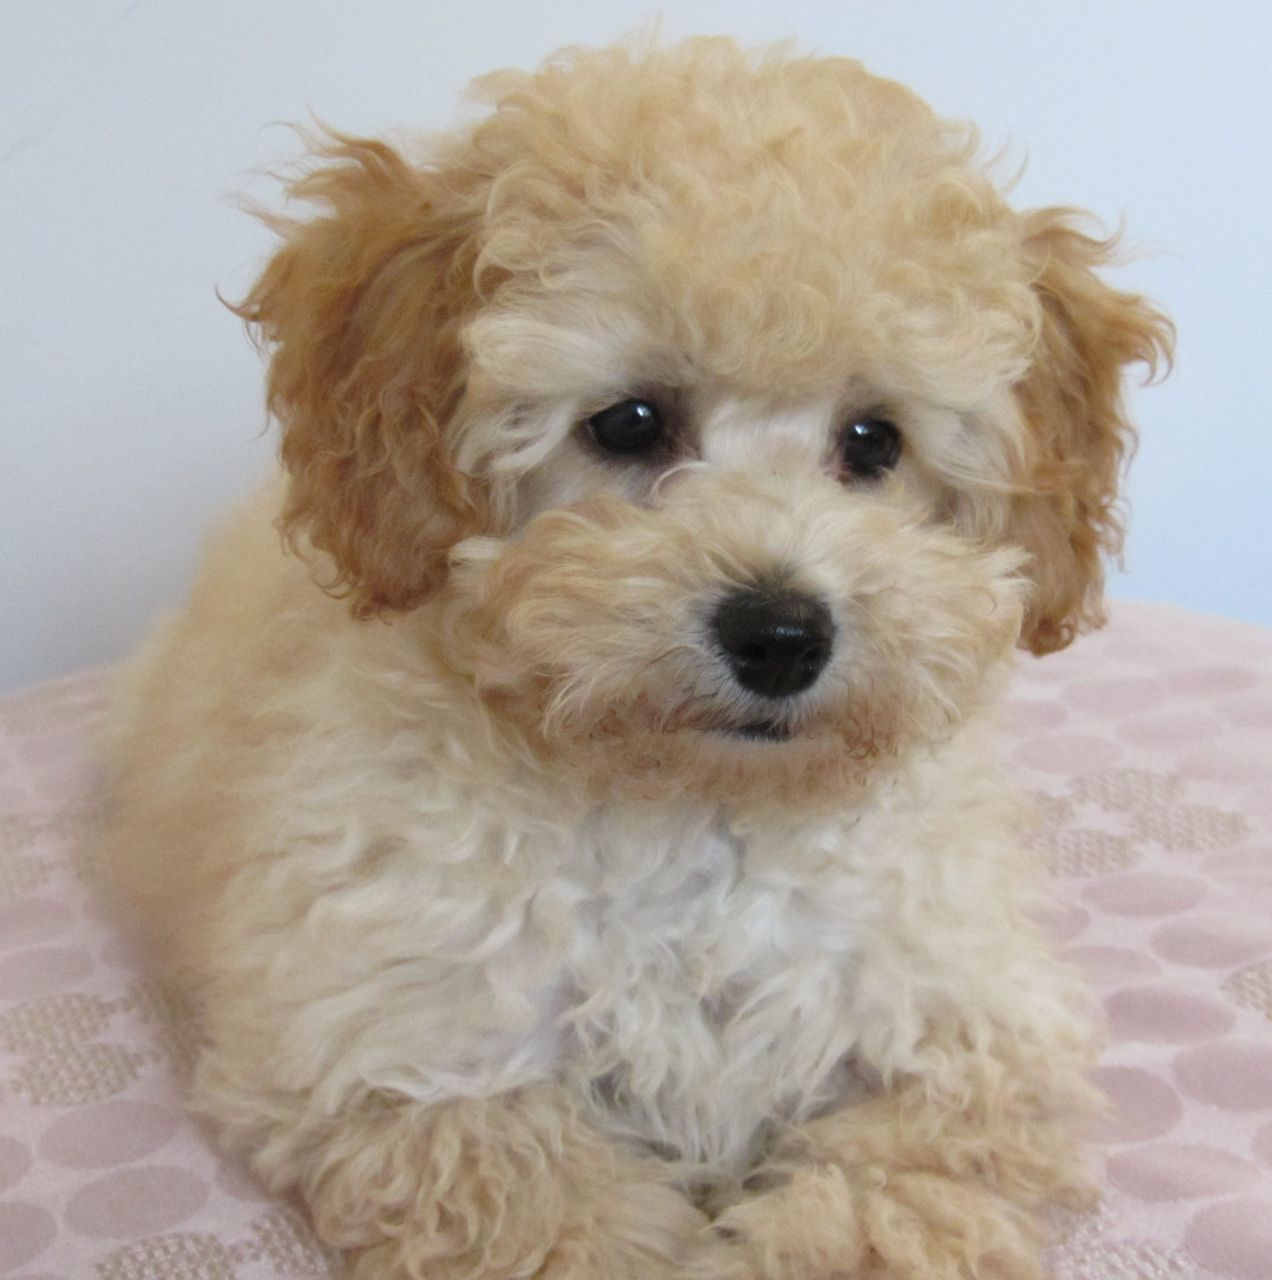 Pictures Of A Mini Poodle And Bichon Mix Breeds Yahoo Image